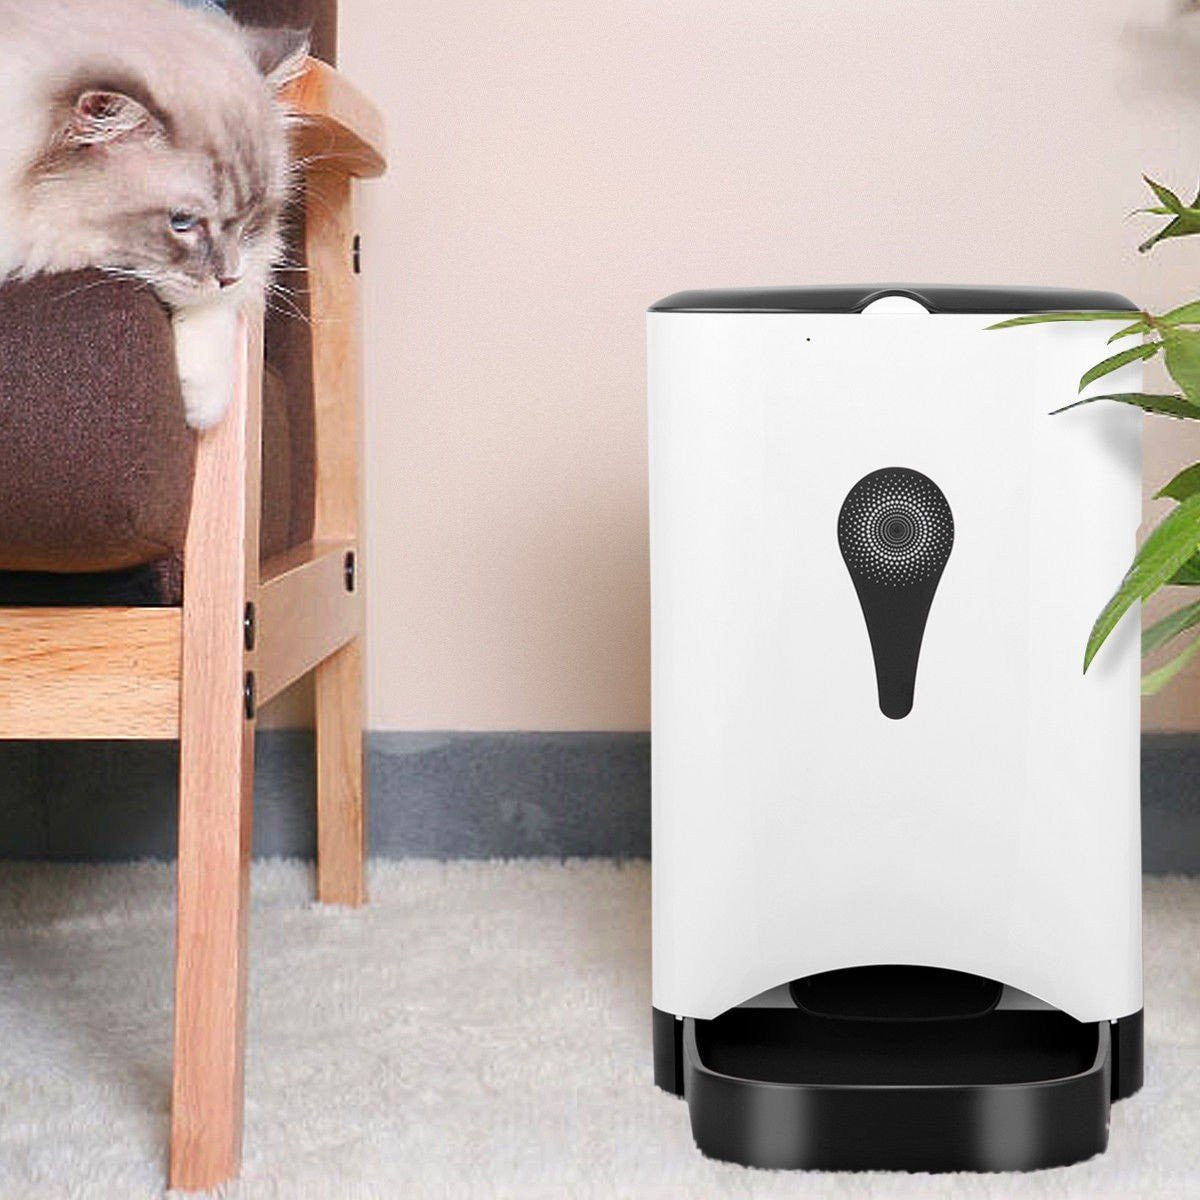 Automatic Power Operated Pet Feeder - petshoppee.com